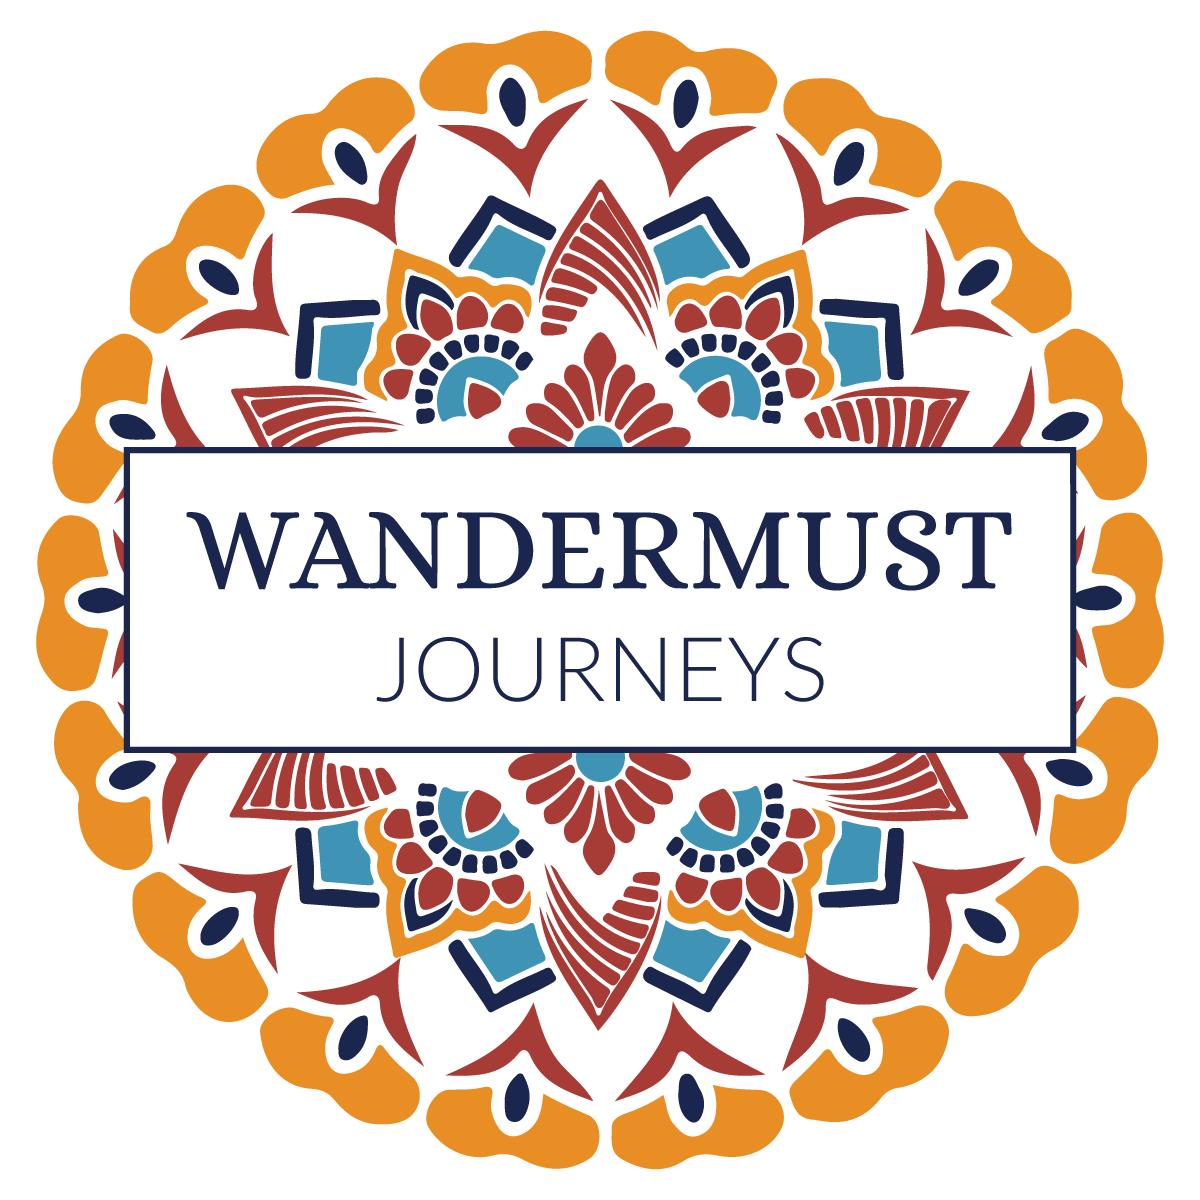 Wandermust Journeys